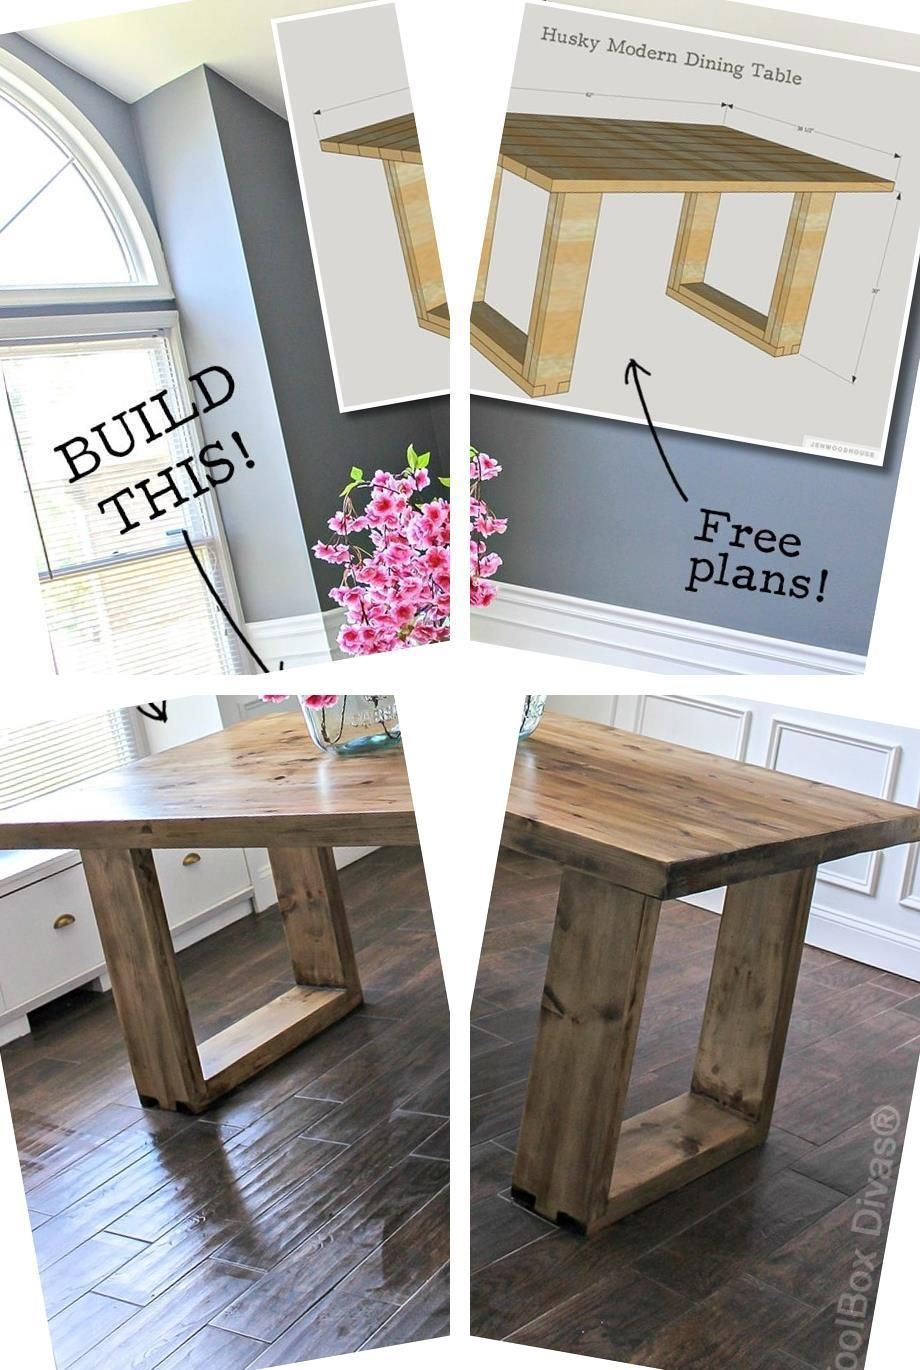 Build Your Own Furniture Home Decorating Apps How To Make Homemade Furniture In 2020 Wood Furniture Diy Furniture Diy Wood Furniture Plans